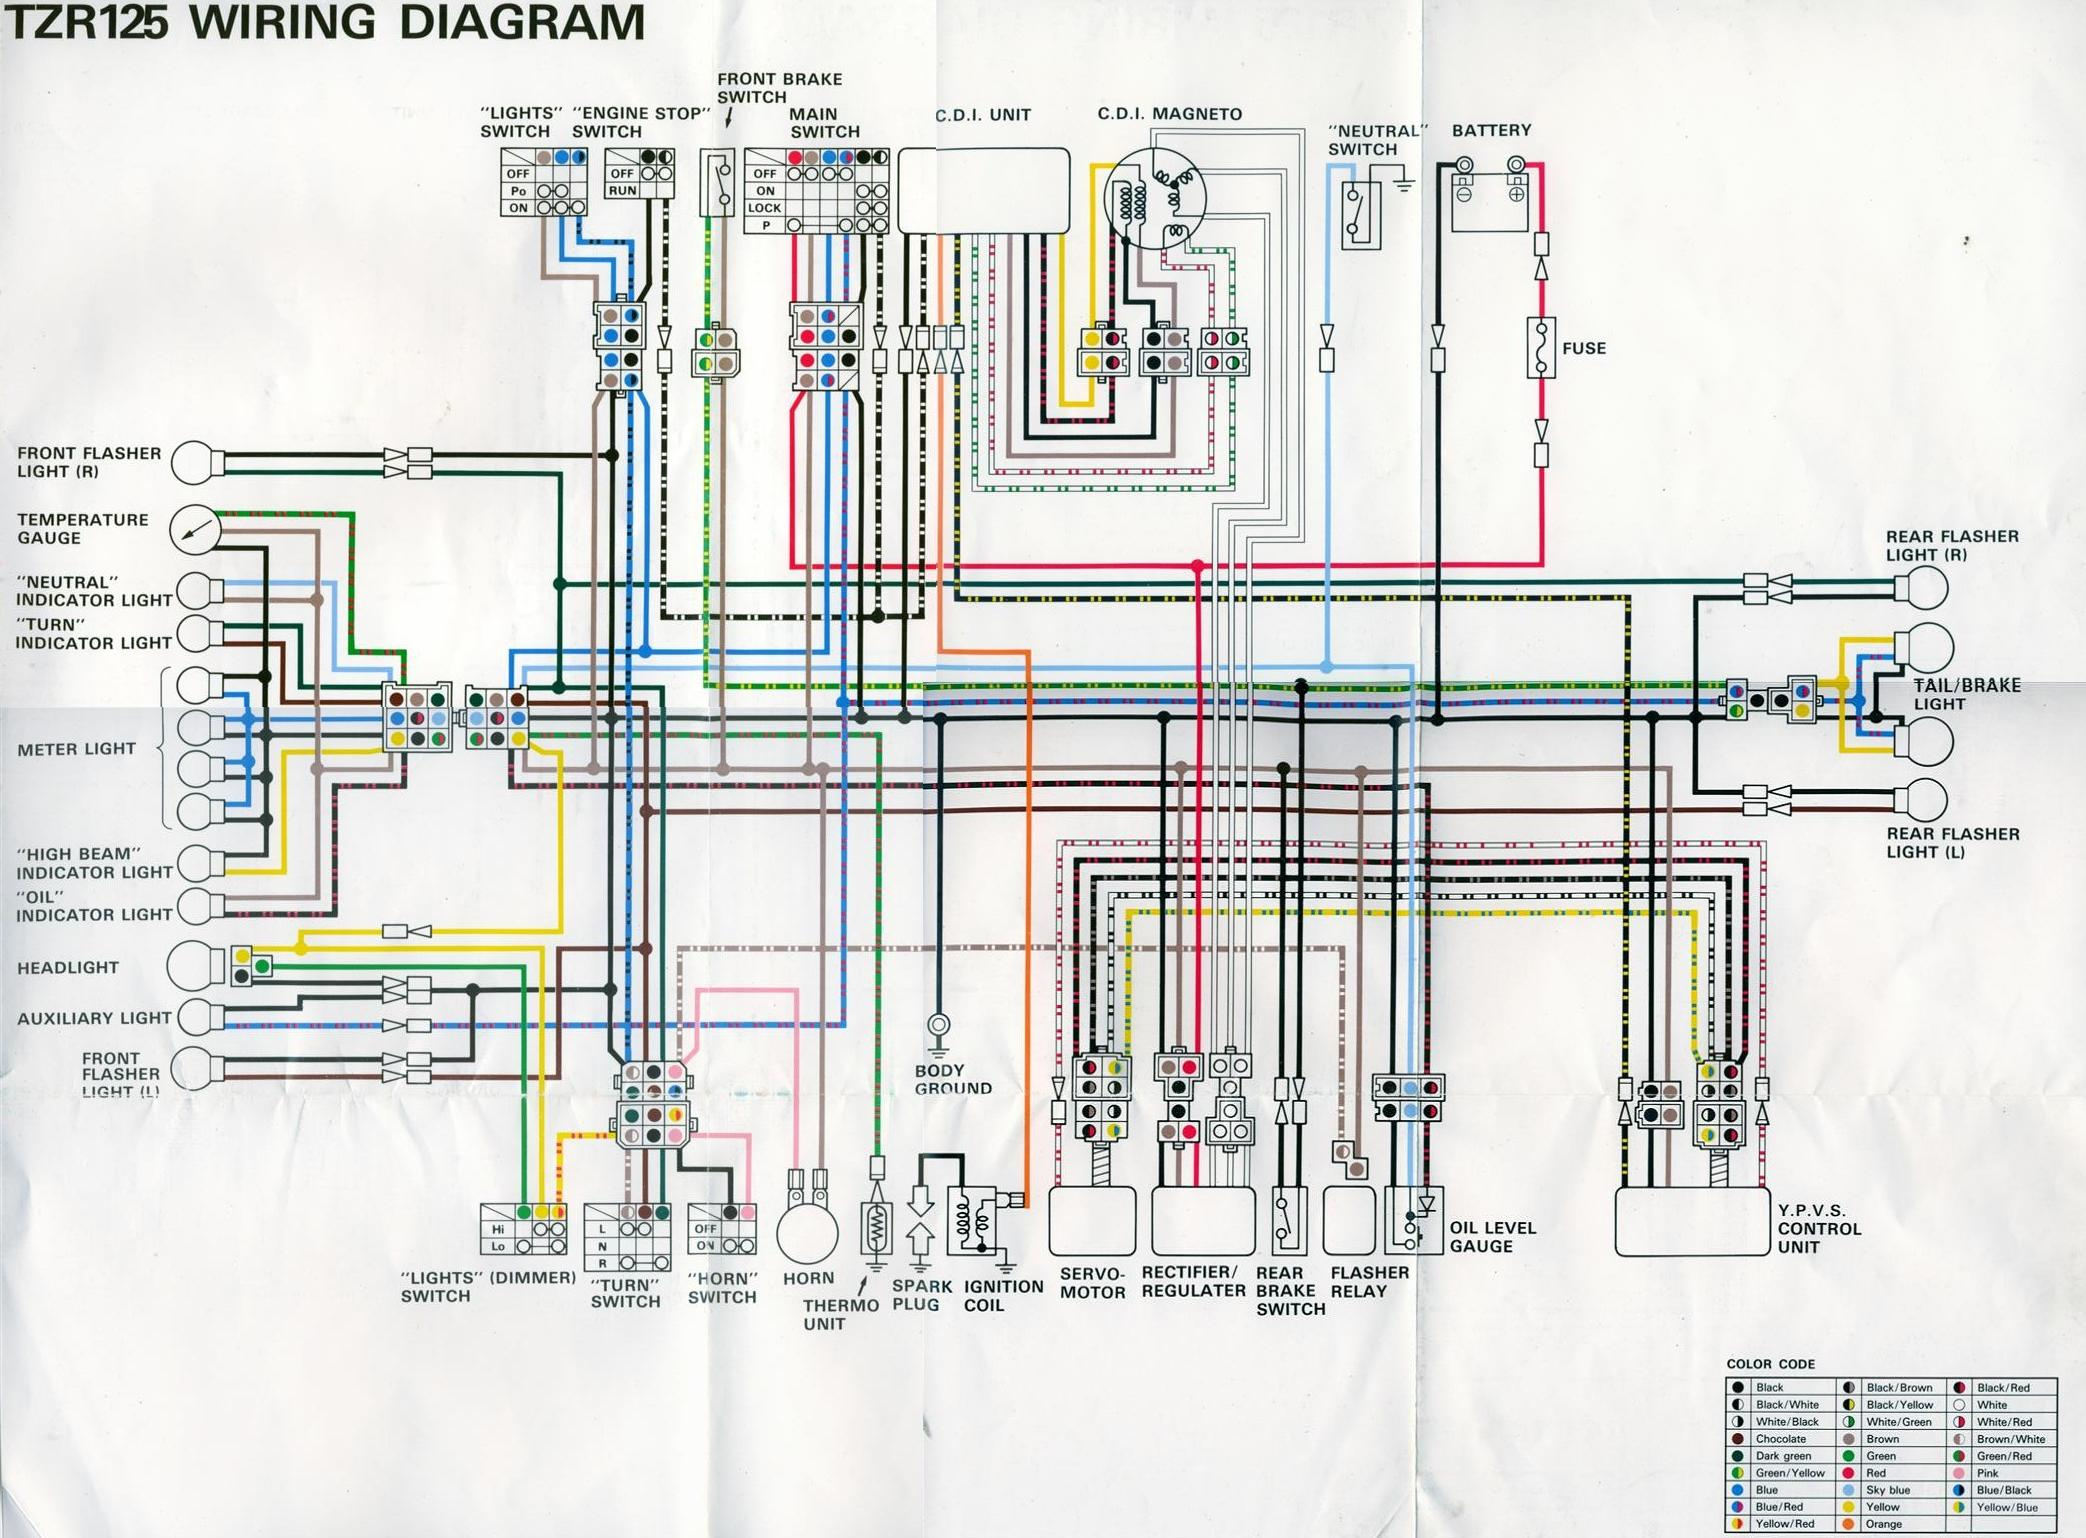 tzr 4fl wiring diagram (in colour) think i found it?? - 125cc sportsbikes forum 125cc wiring diagram